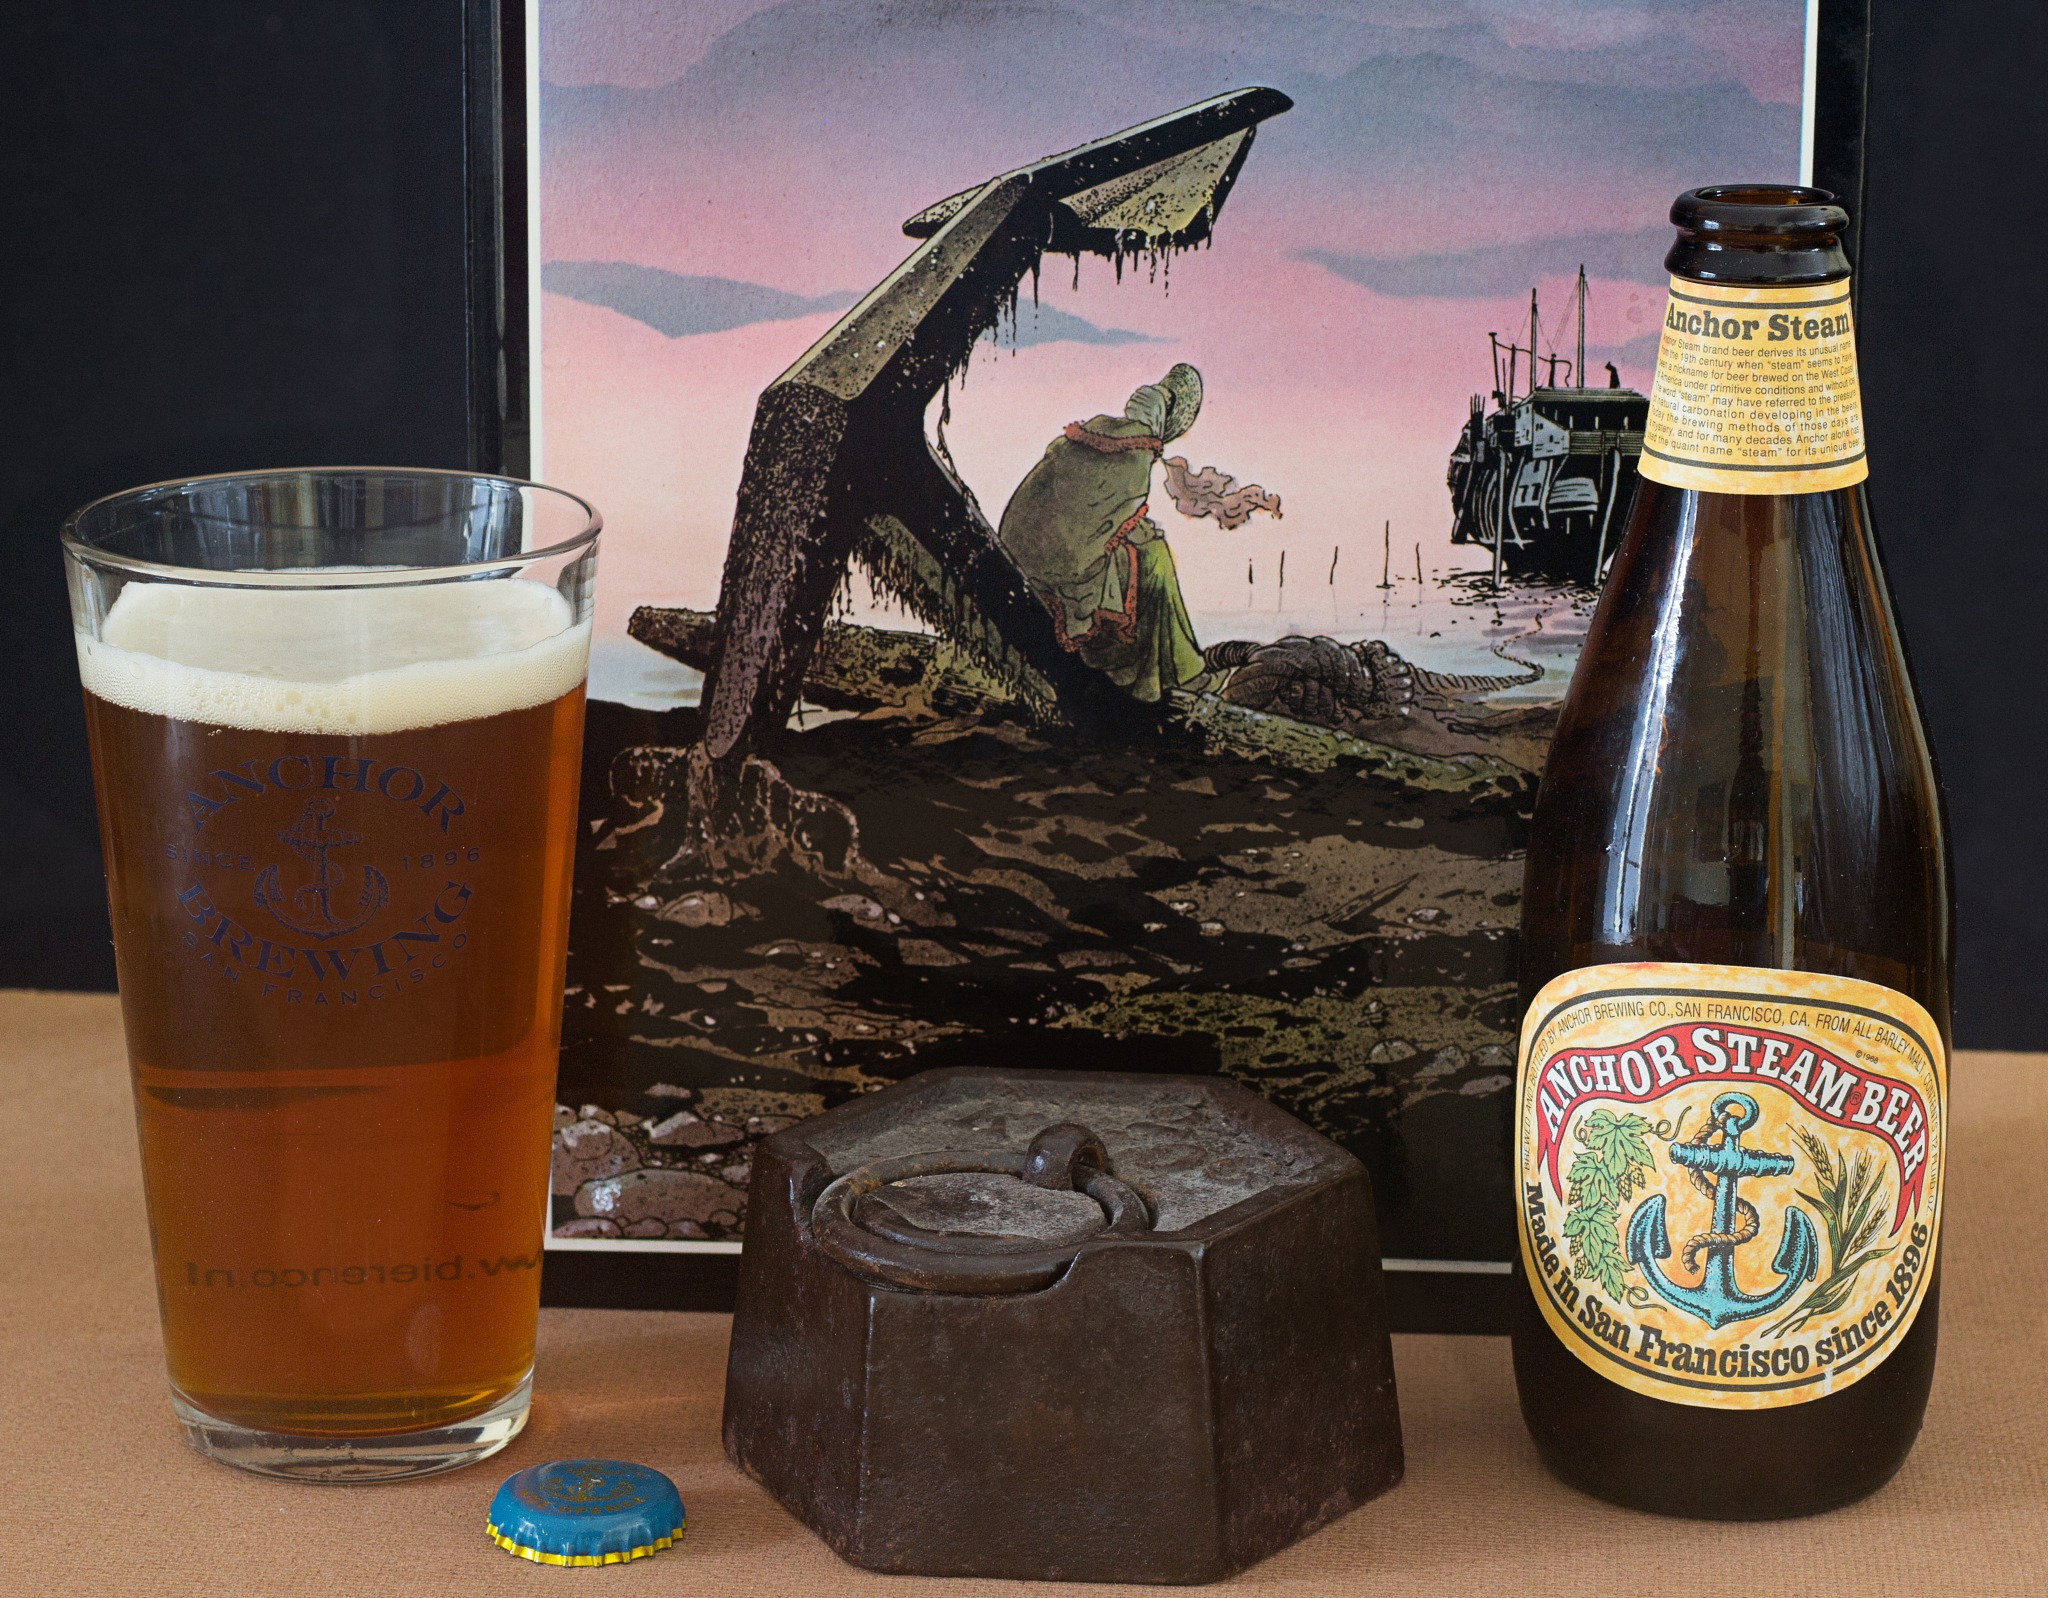 Anchor Steam Beer by Franck Rouanet